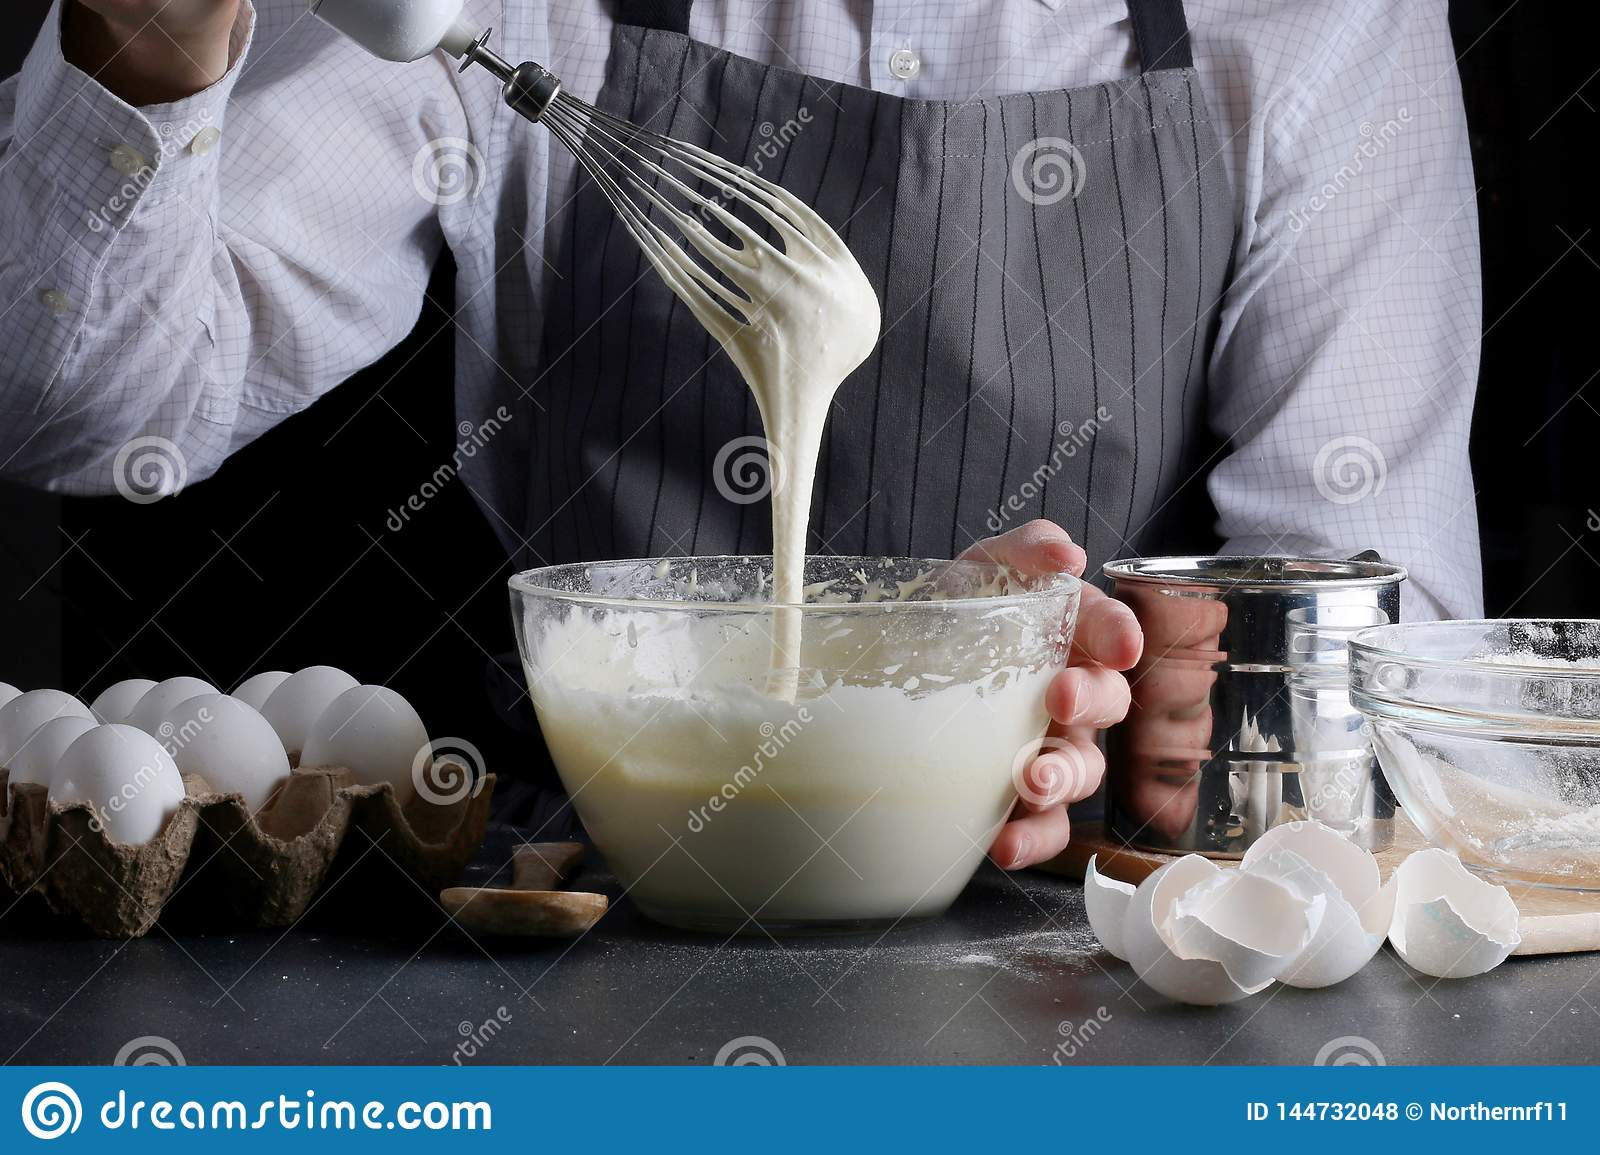 Man pouring dough for pie. cake making concept